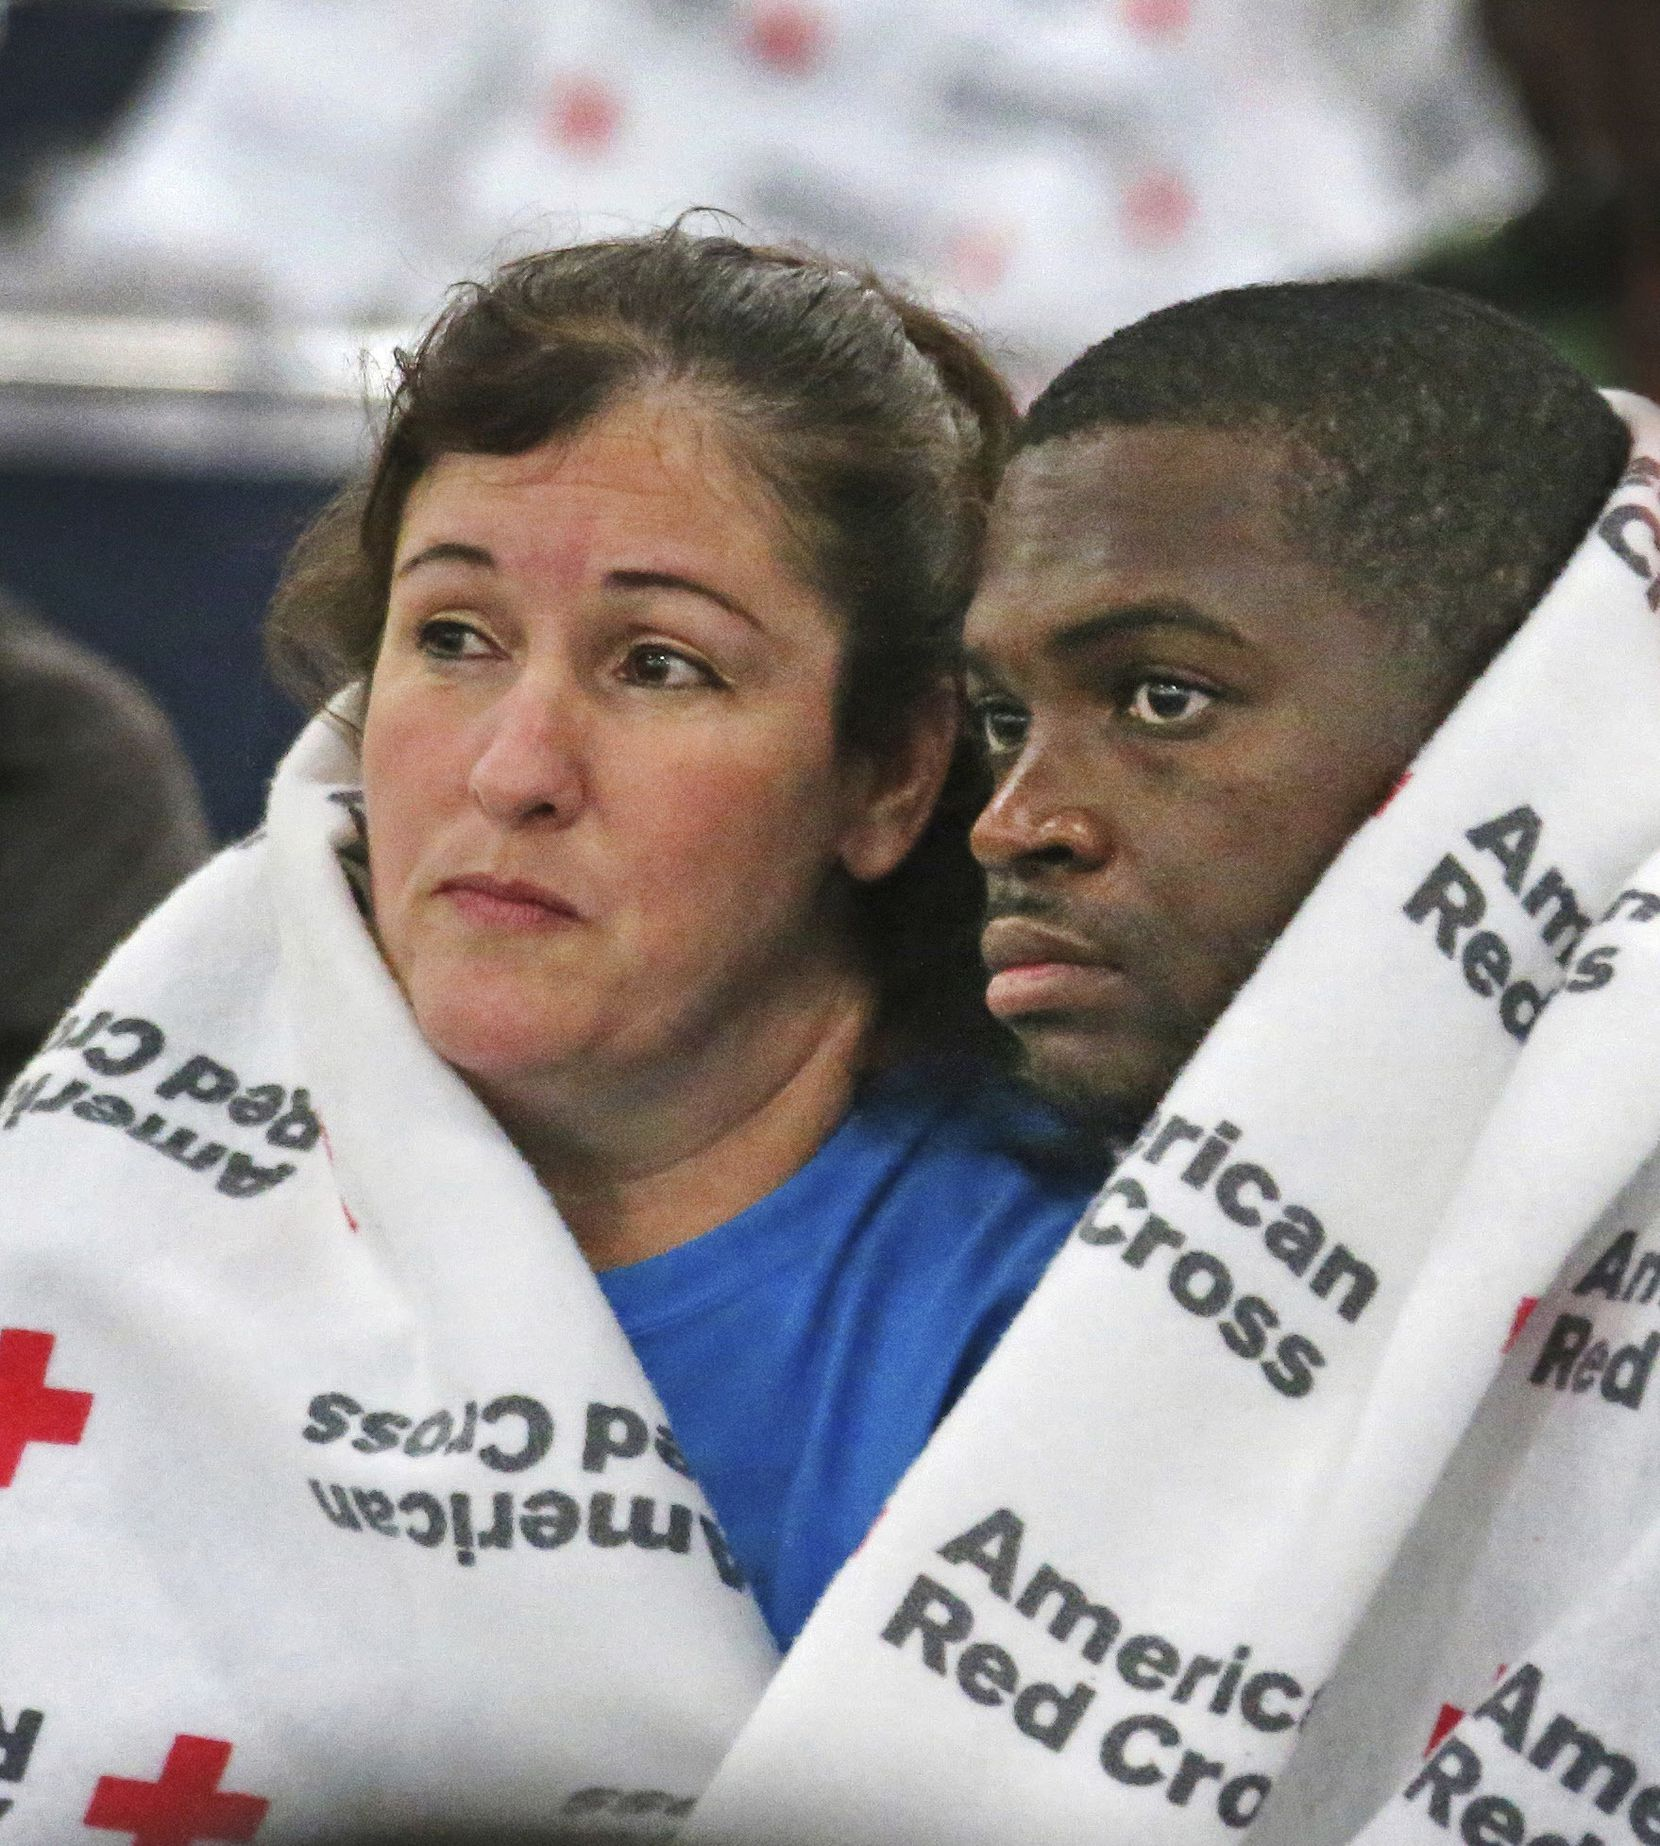 Displaced South Houston residents Oralia Guerra and Diamond Robinson huddle together to stay warm underneath Red Cross blankets at the George Brown Convention Center in Houston on Monday, Aug. 28, 2017, in the wake of Tropical Storm Harvey.